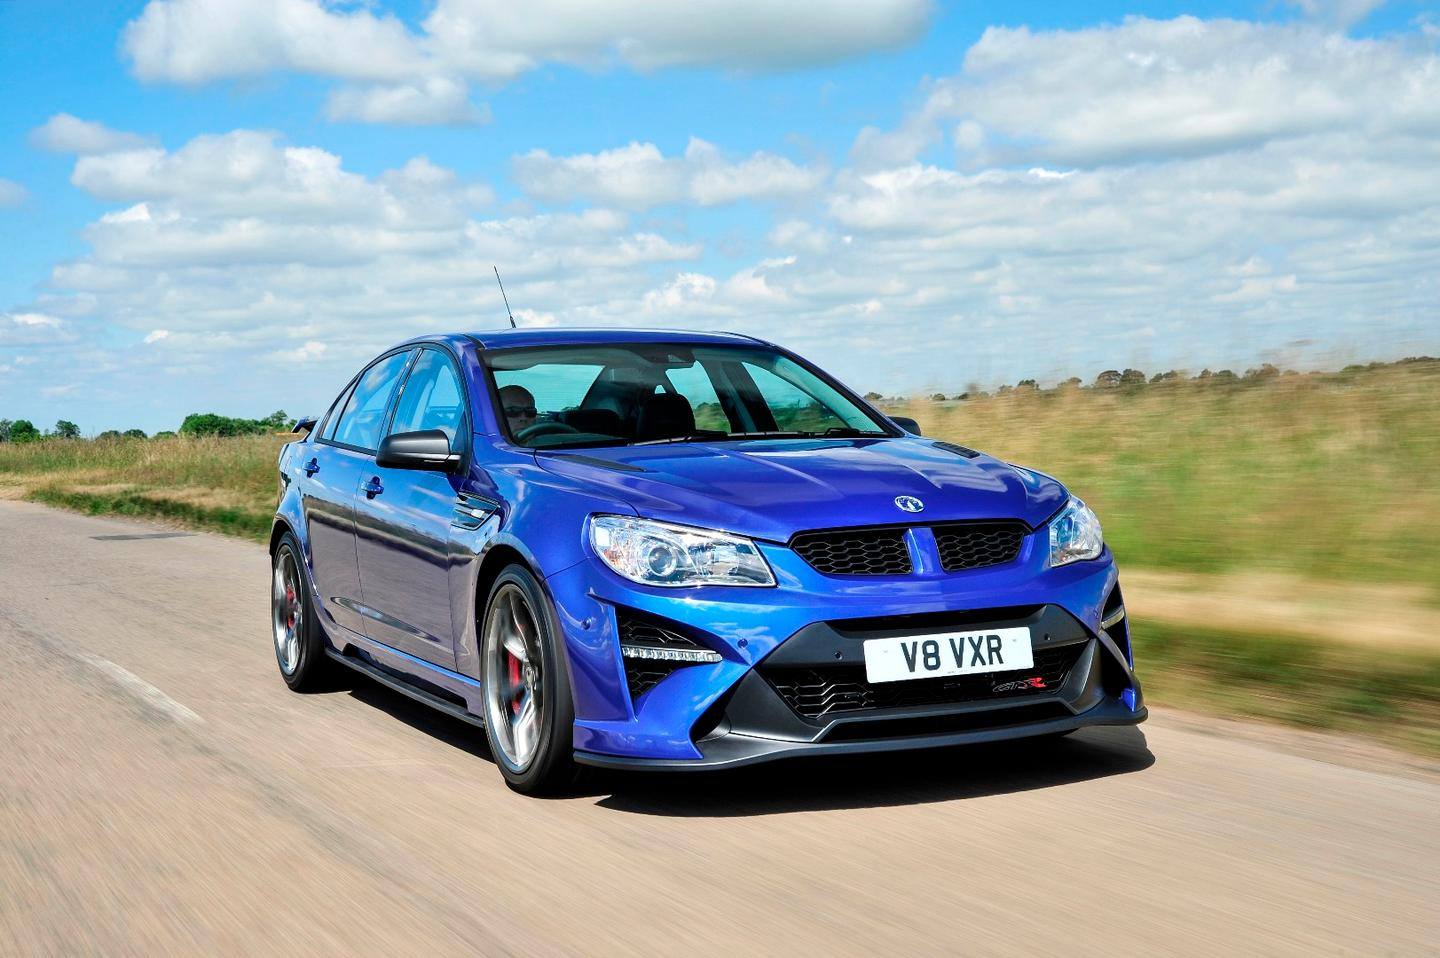 Power in the VXR8 comes from a supercharged V8